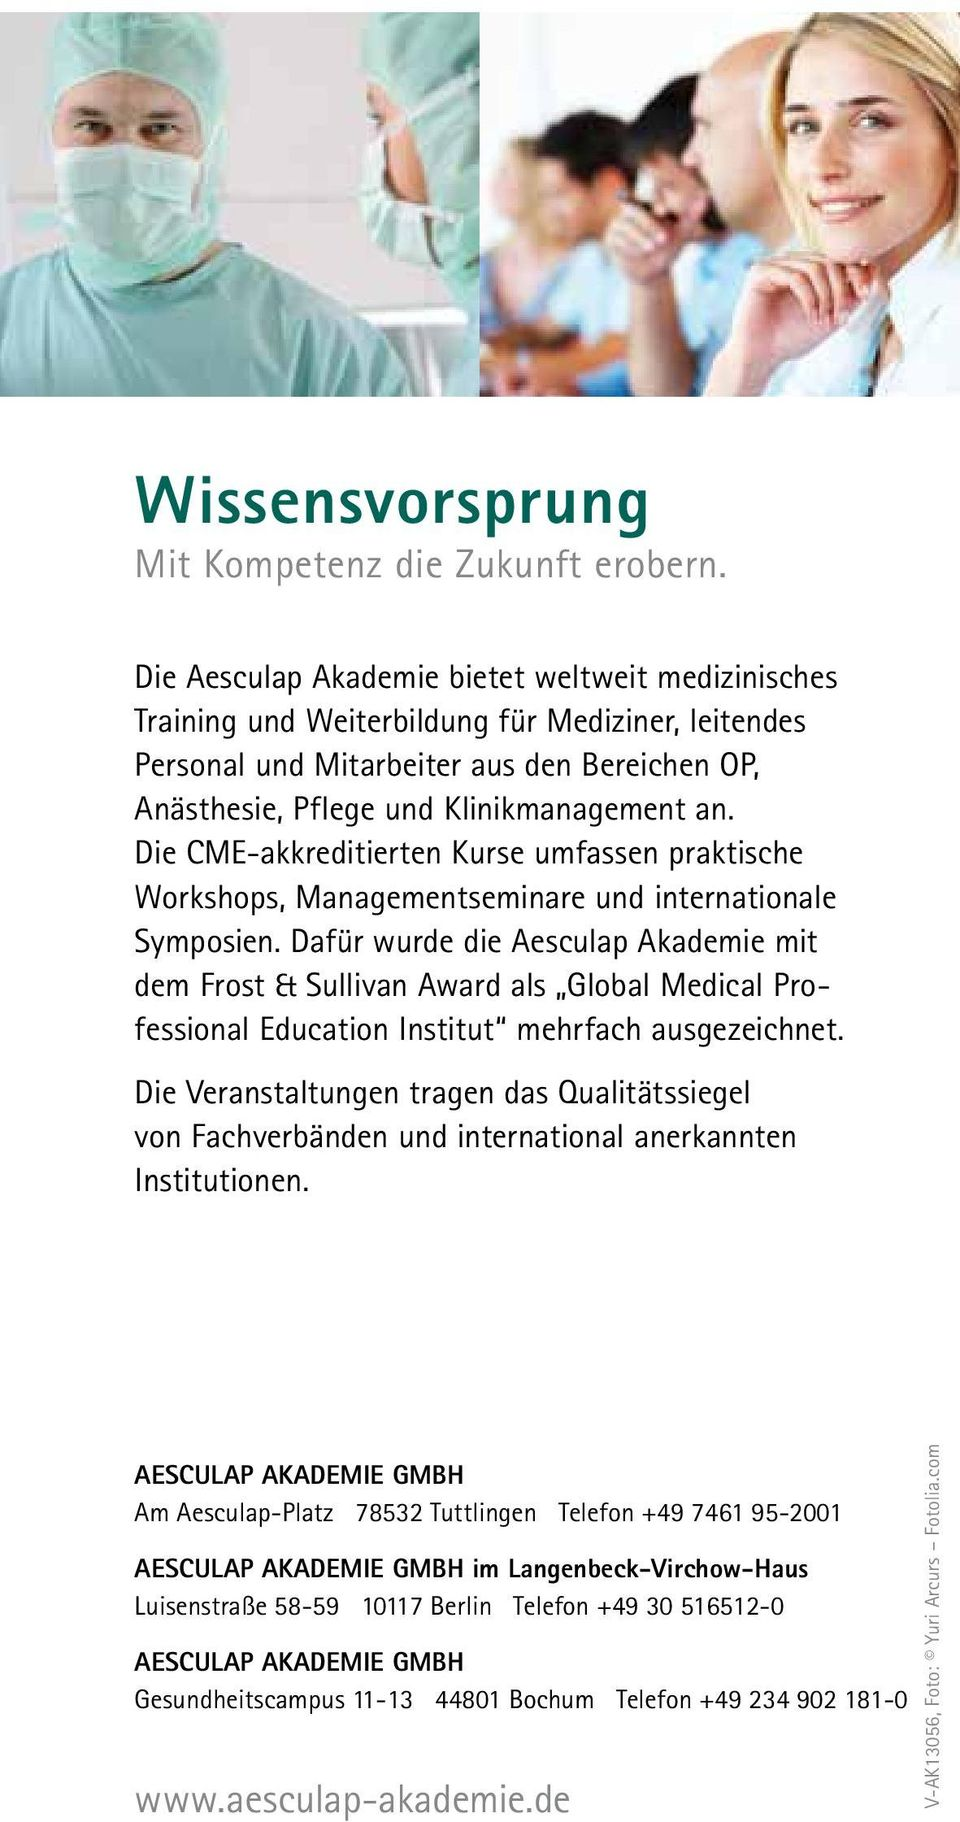 Die CME-akkreditierten Kurse umfassen praktische Workshops, Managementseminare und internationale Symposien.